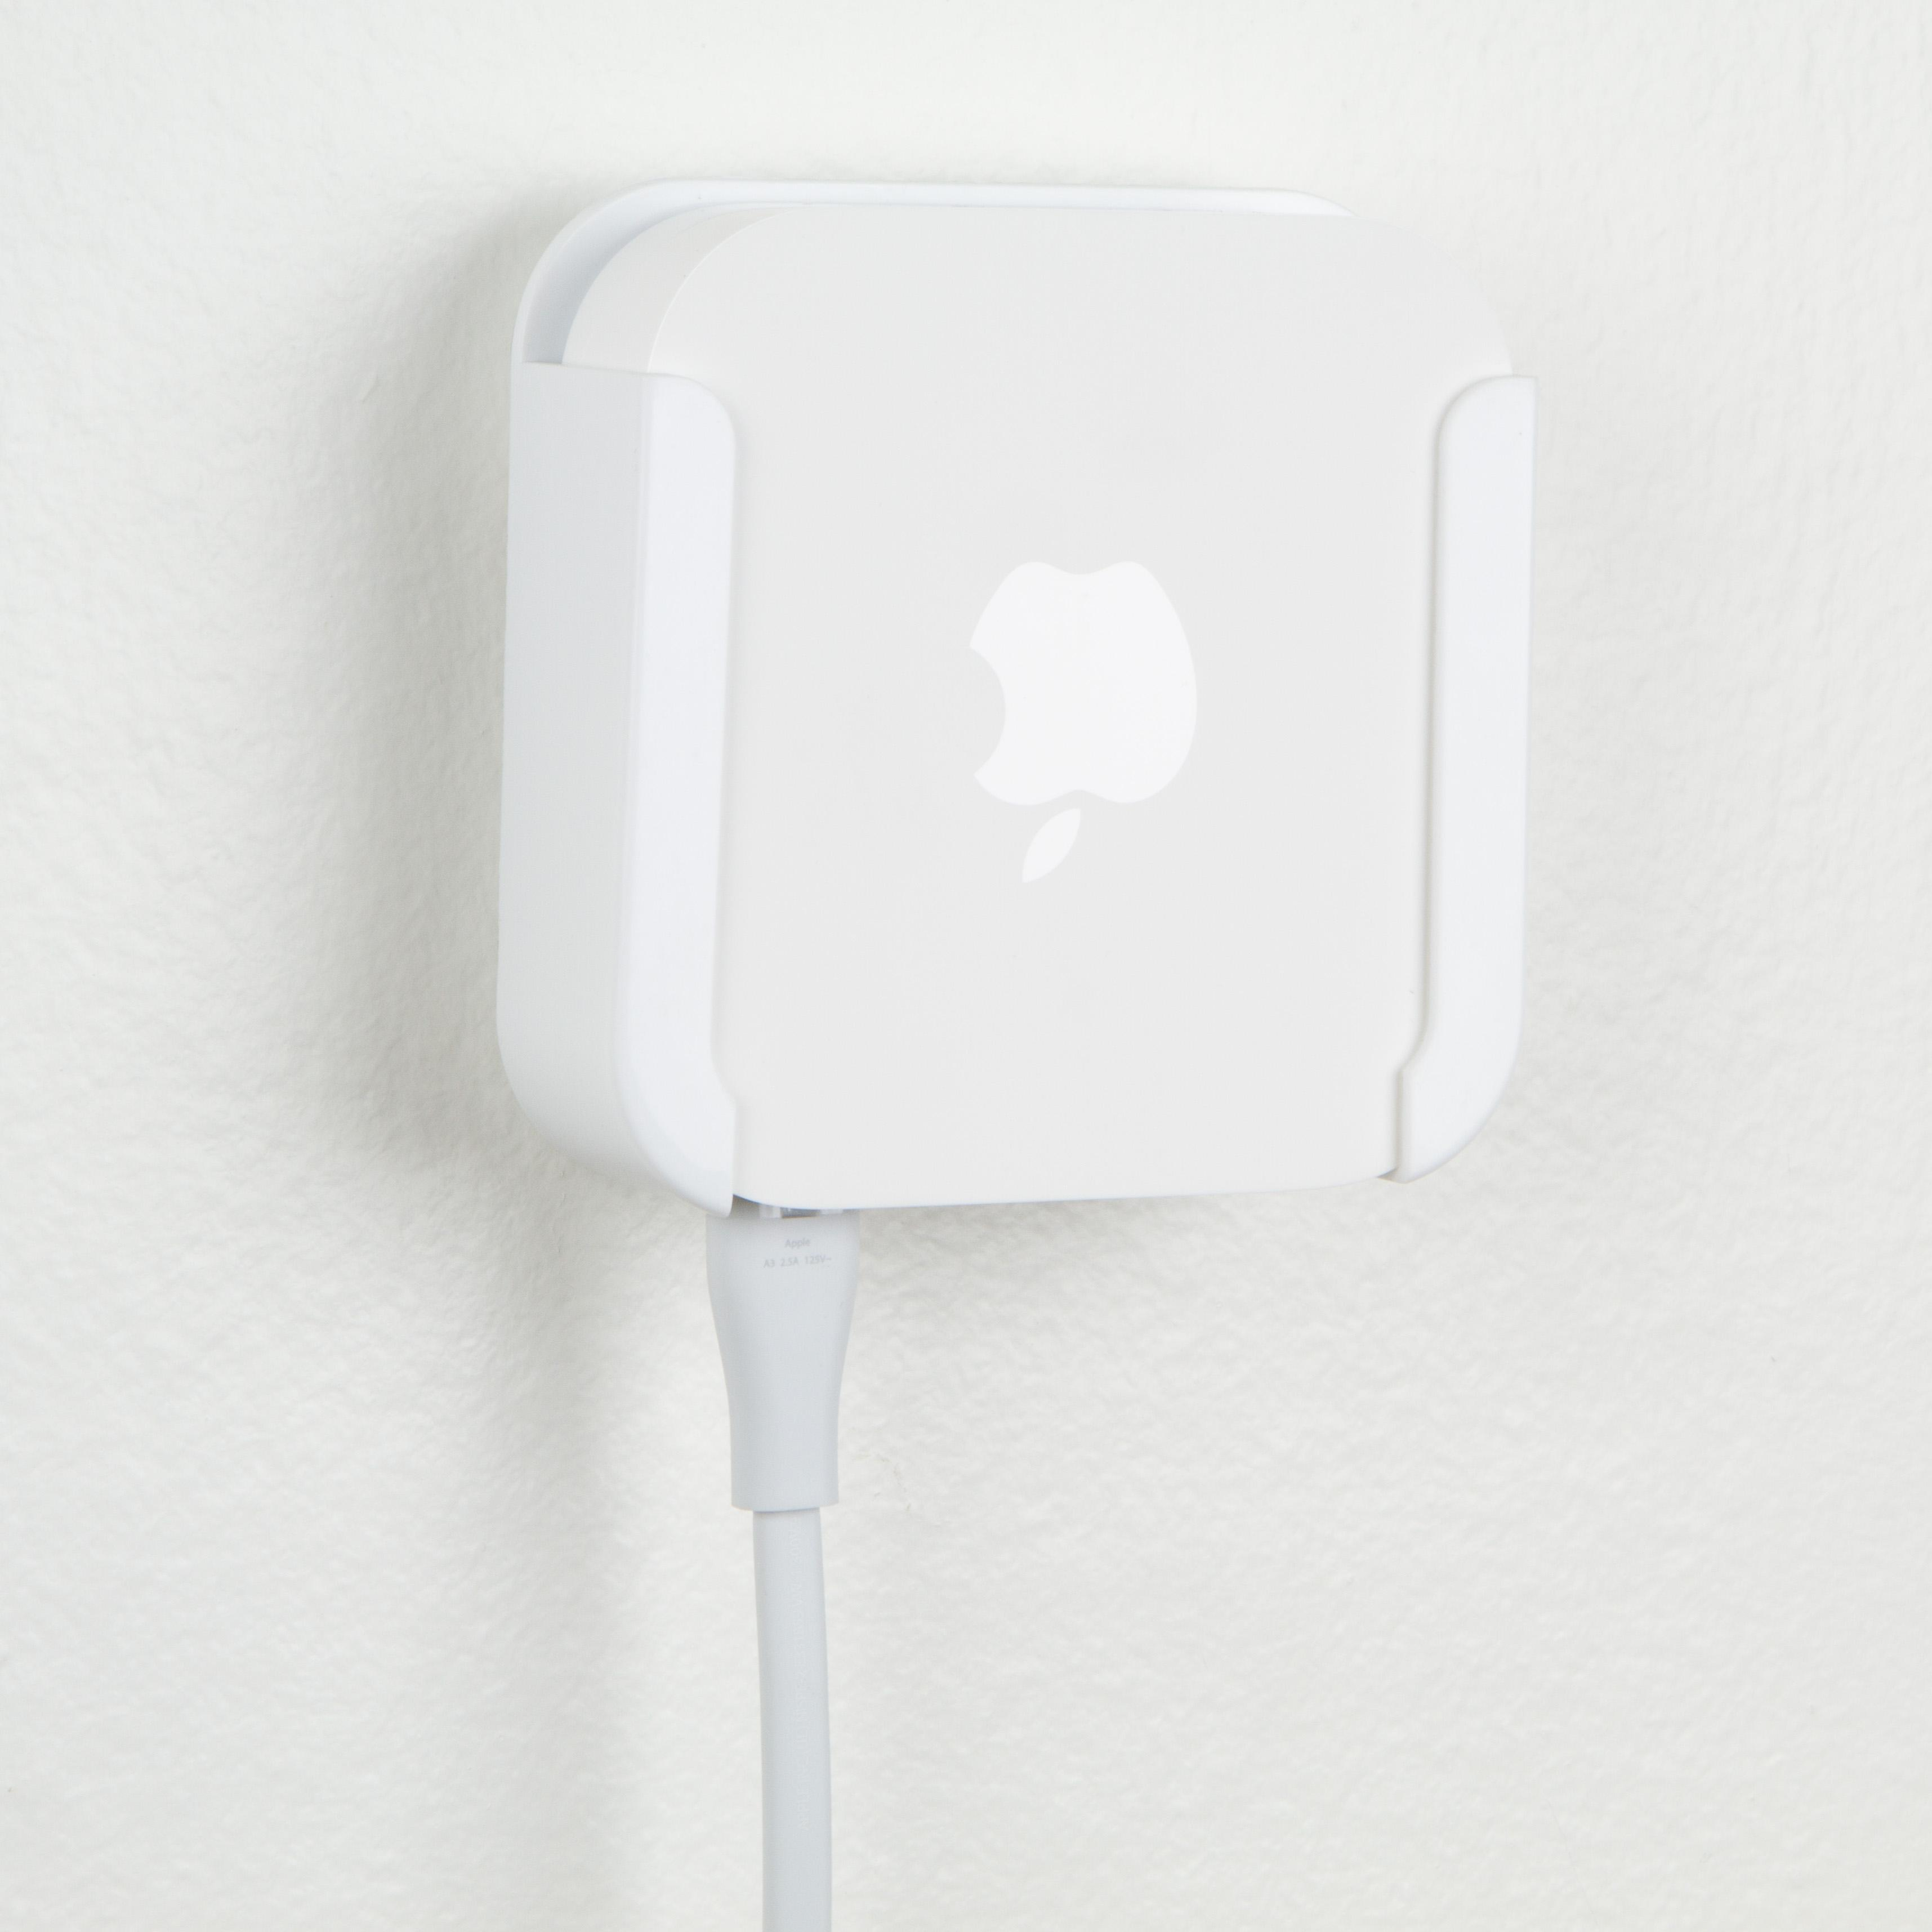 Totalmount Apple Airport Express Mount Backpack